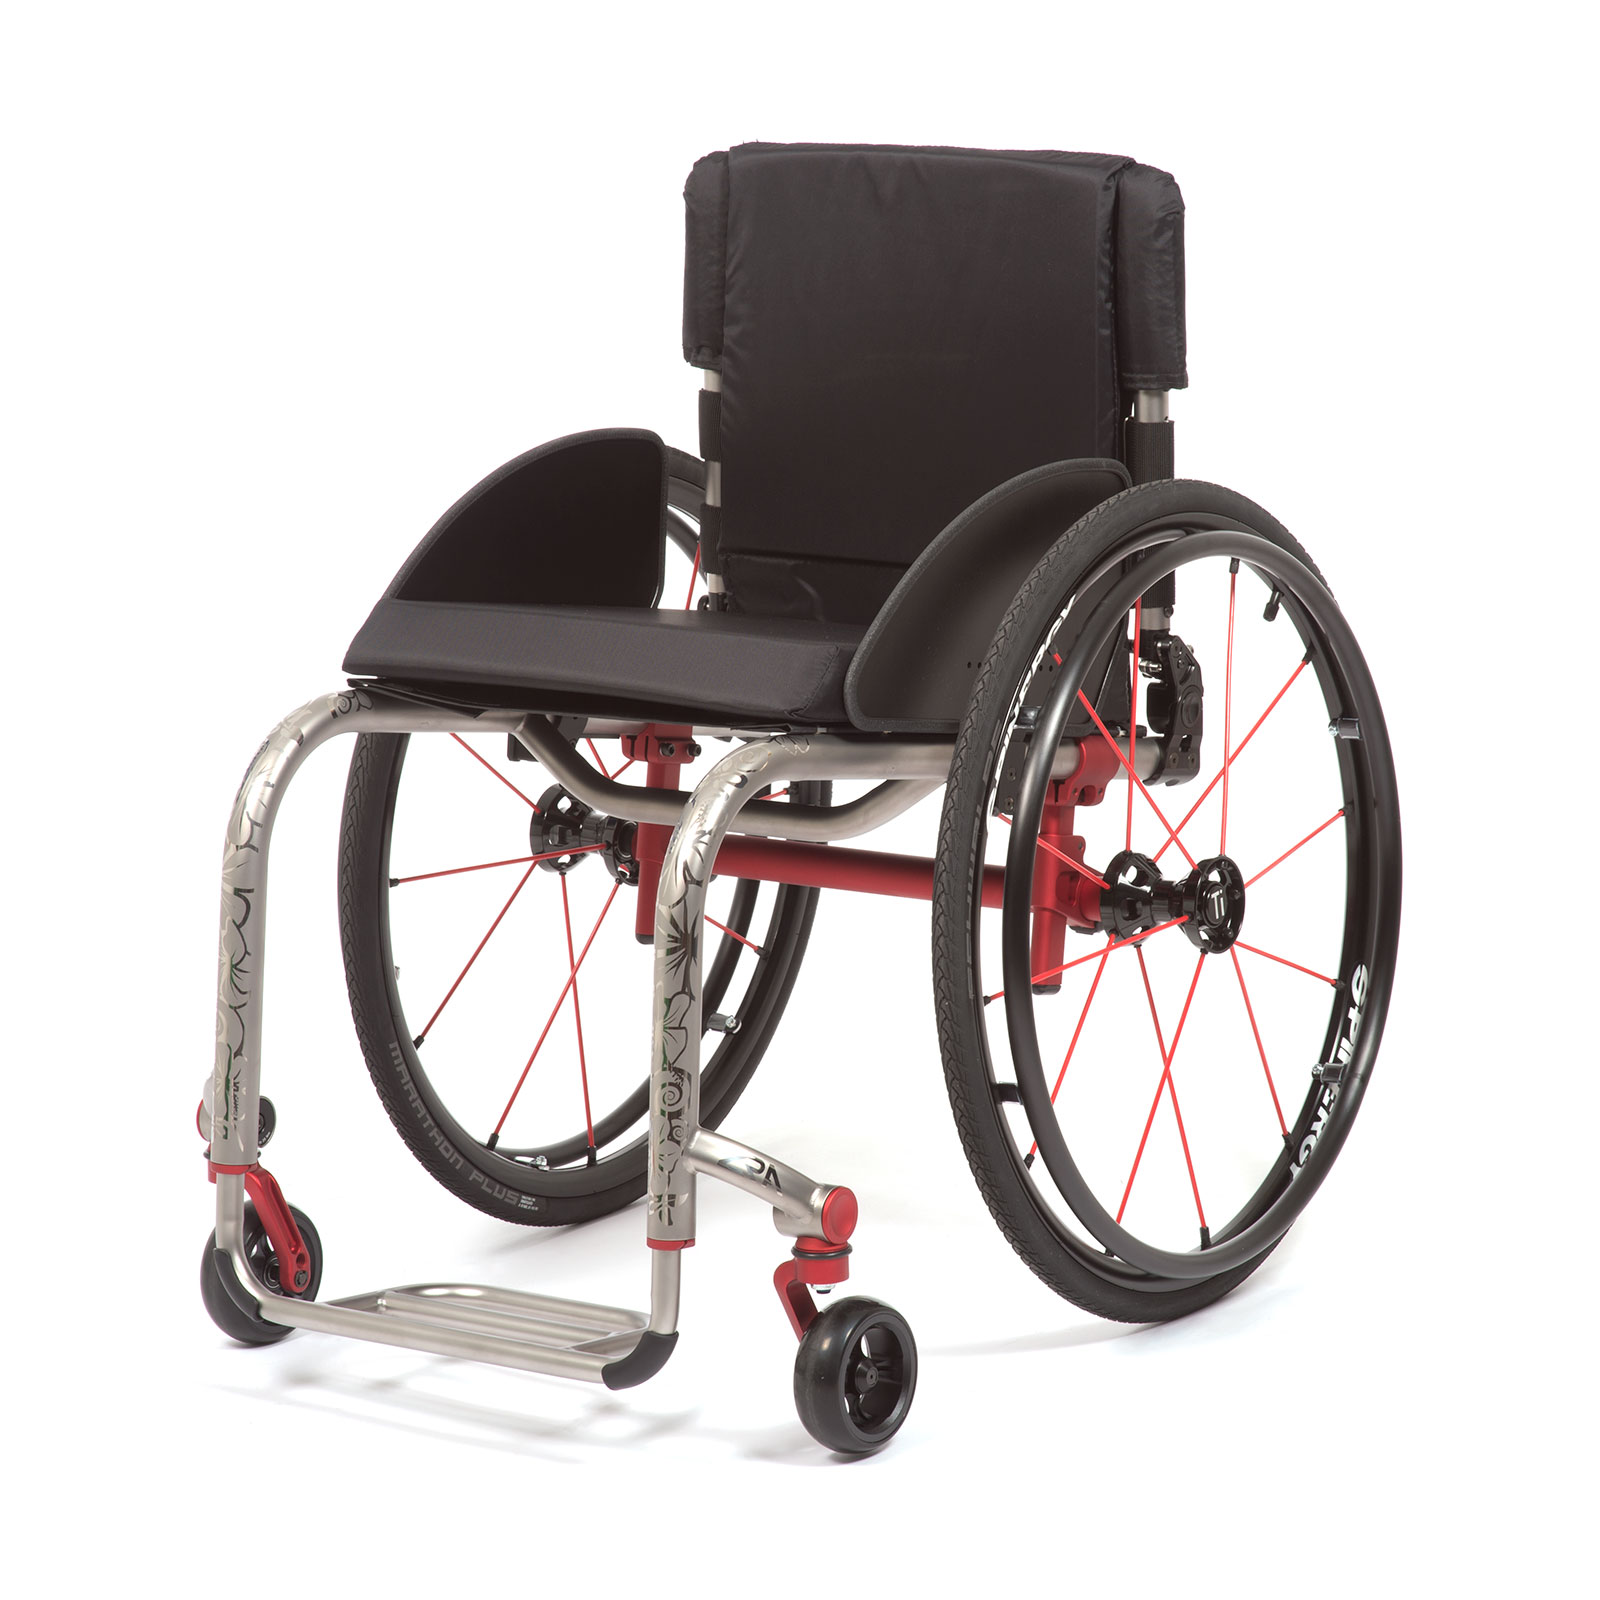 The Left Mid-Front of the Wheelchair